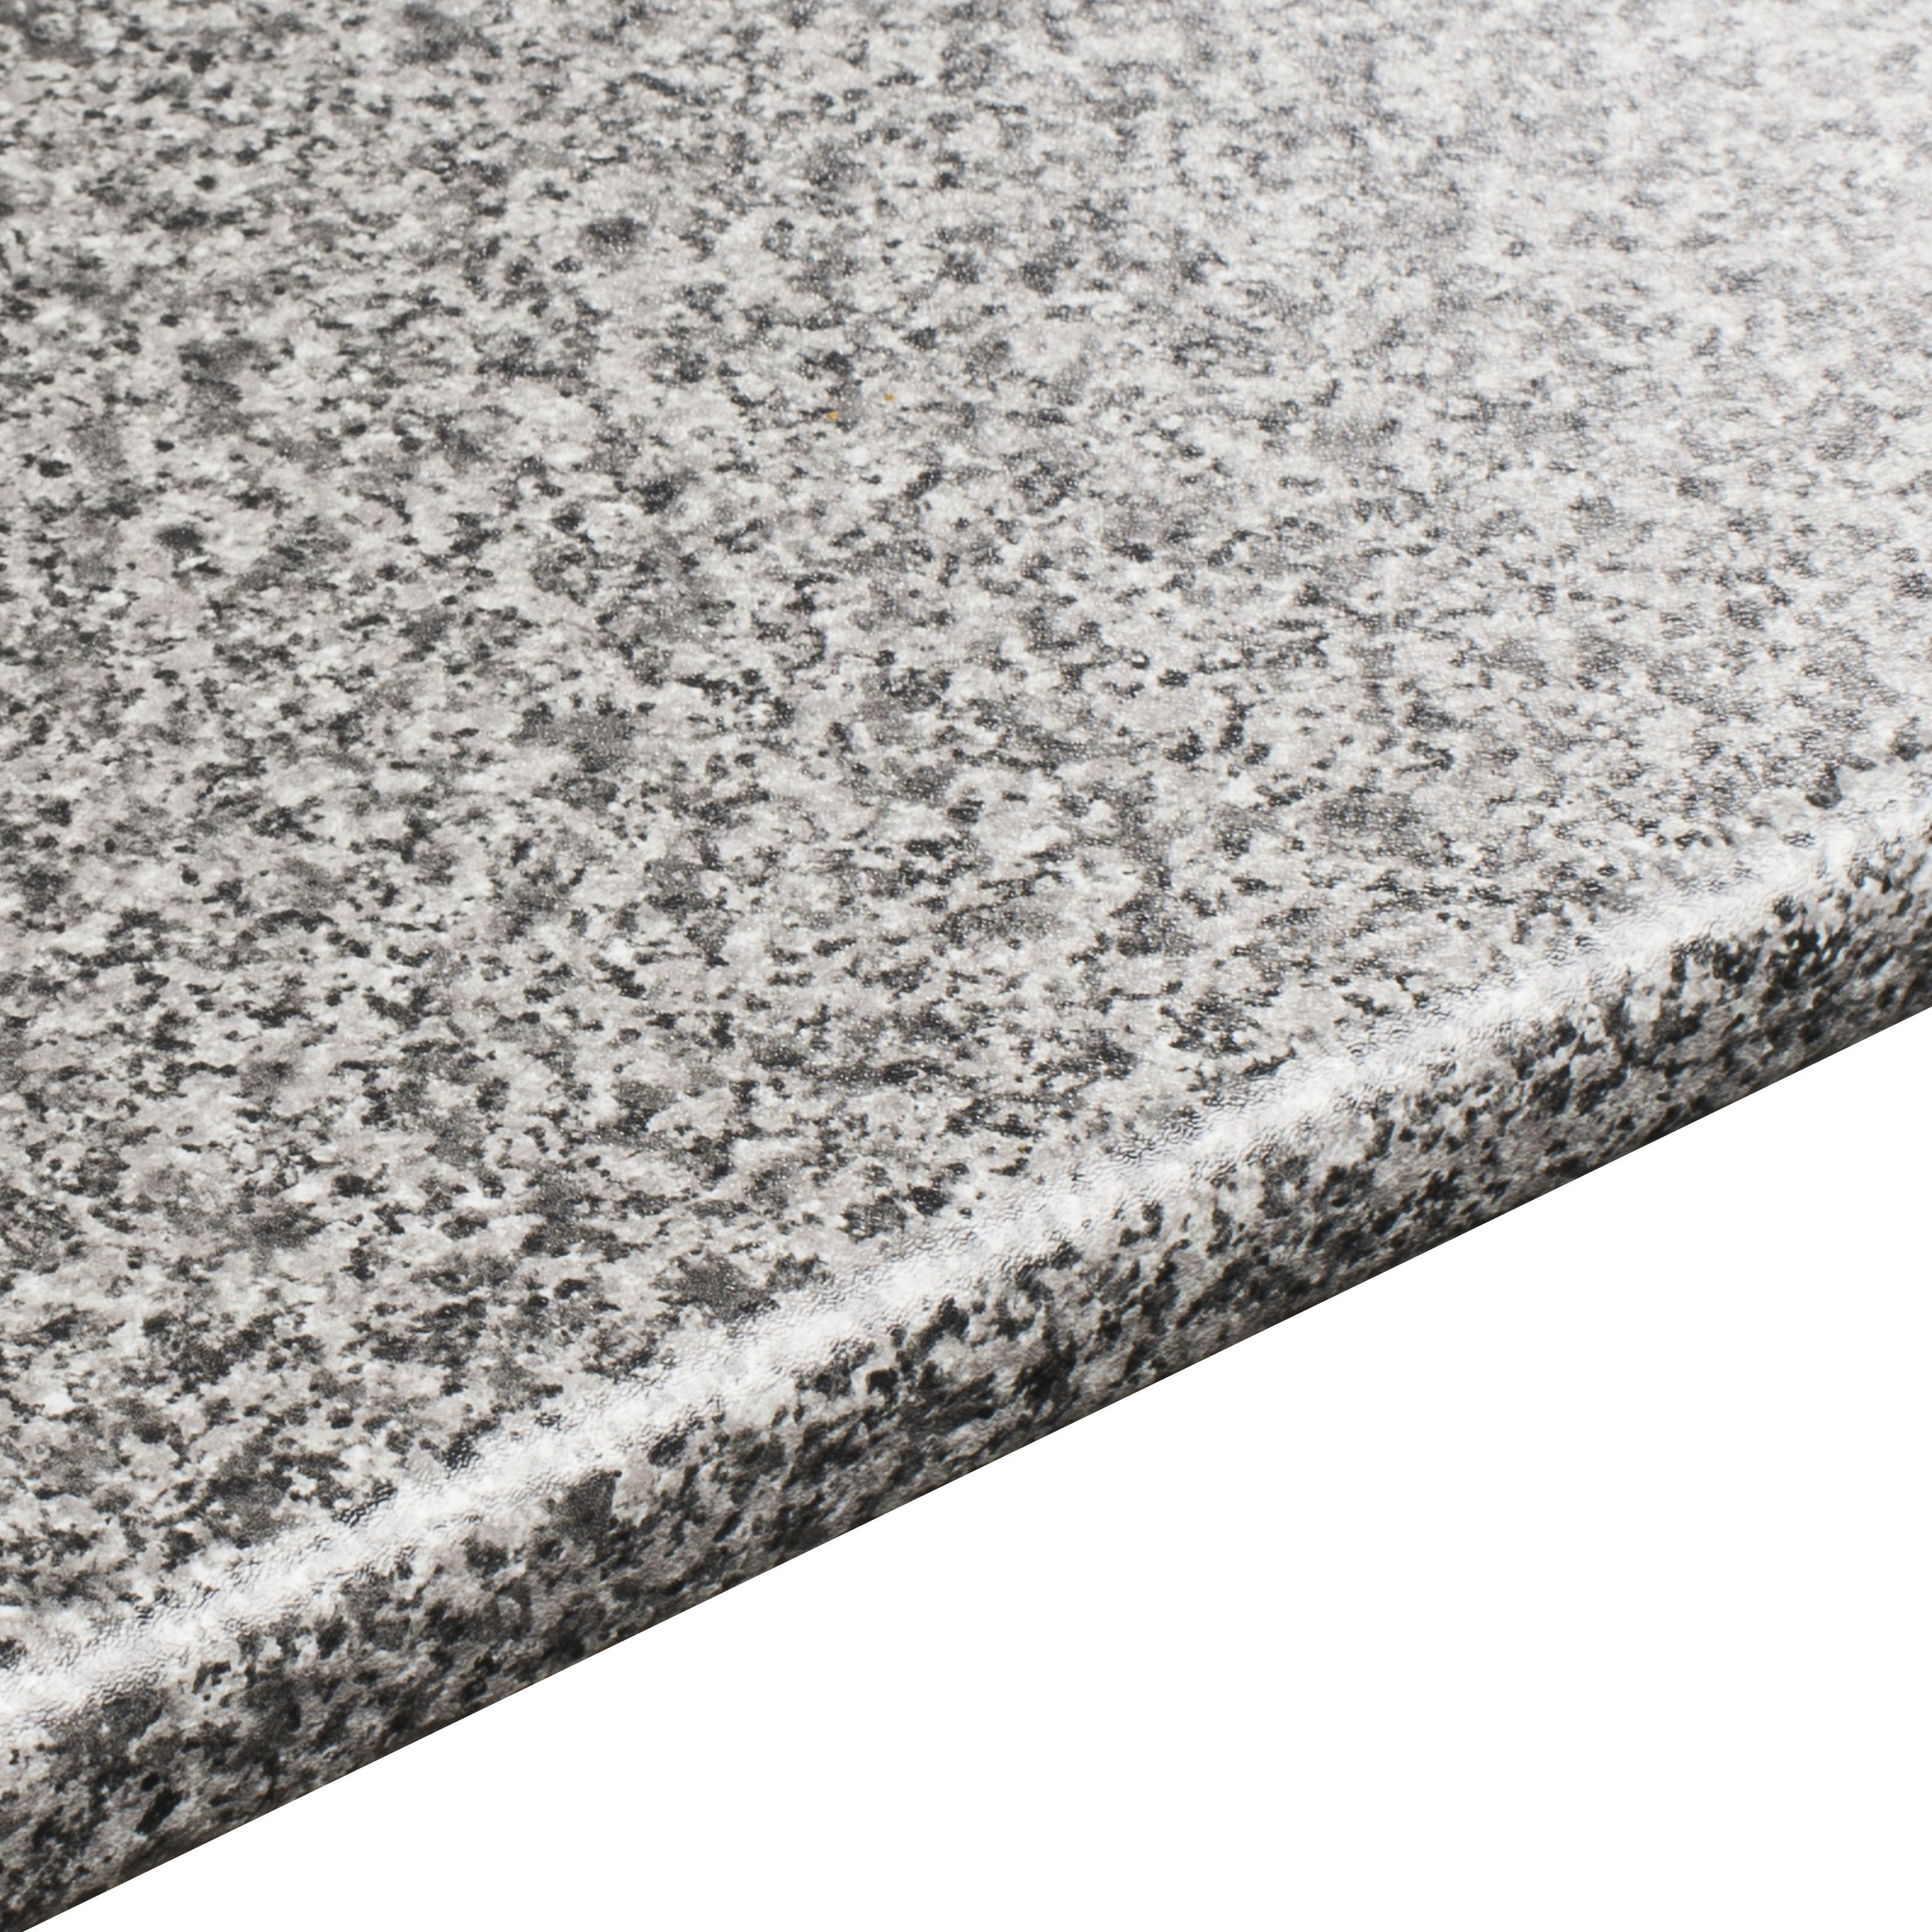 28mm Inari Grey Granite effect Round edge Laminate